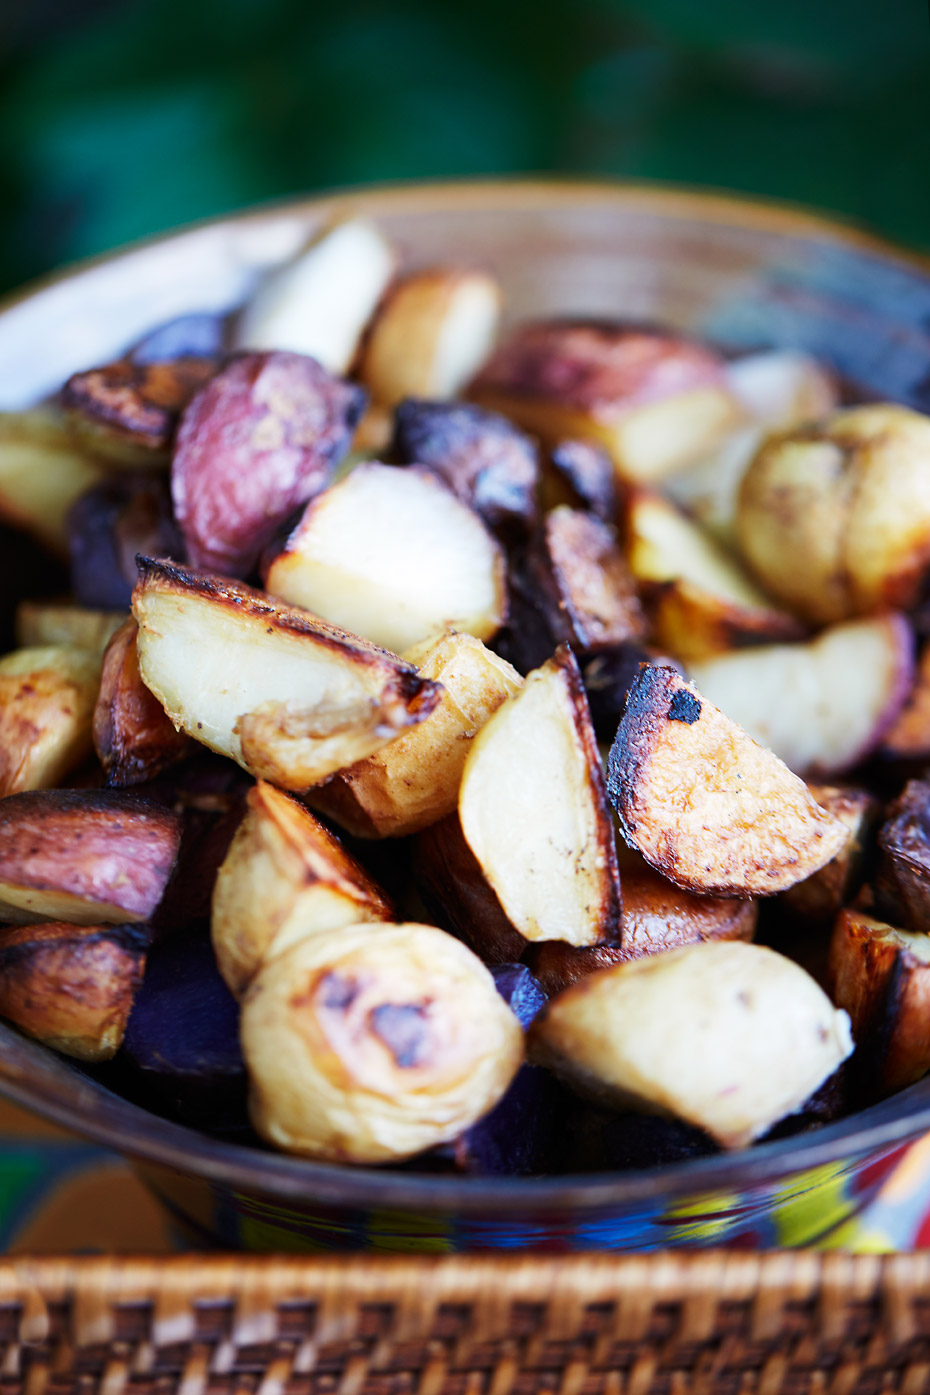 Stacey Van Berkel Photographu I Rustic Roasted potatoes in a bowl